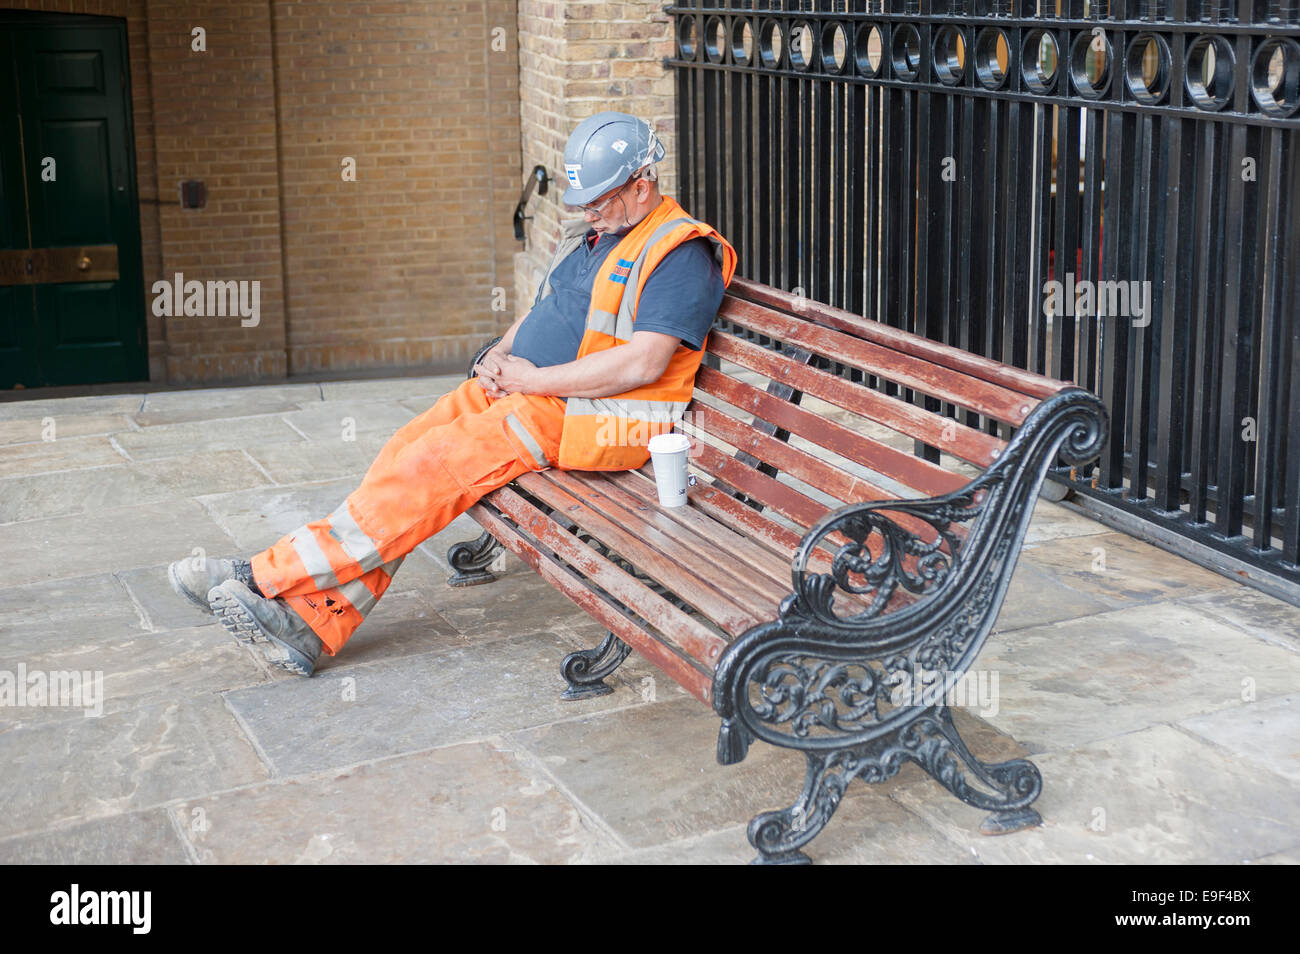 A construction worker having a nap, London, UK - Stock Image